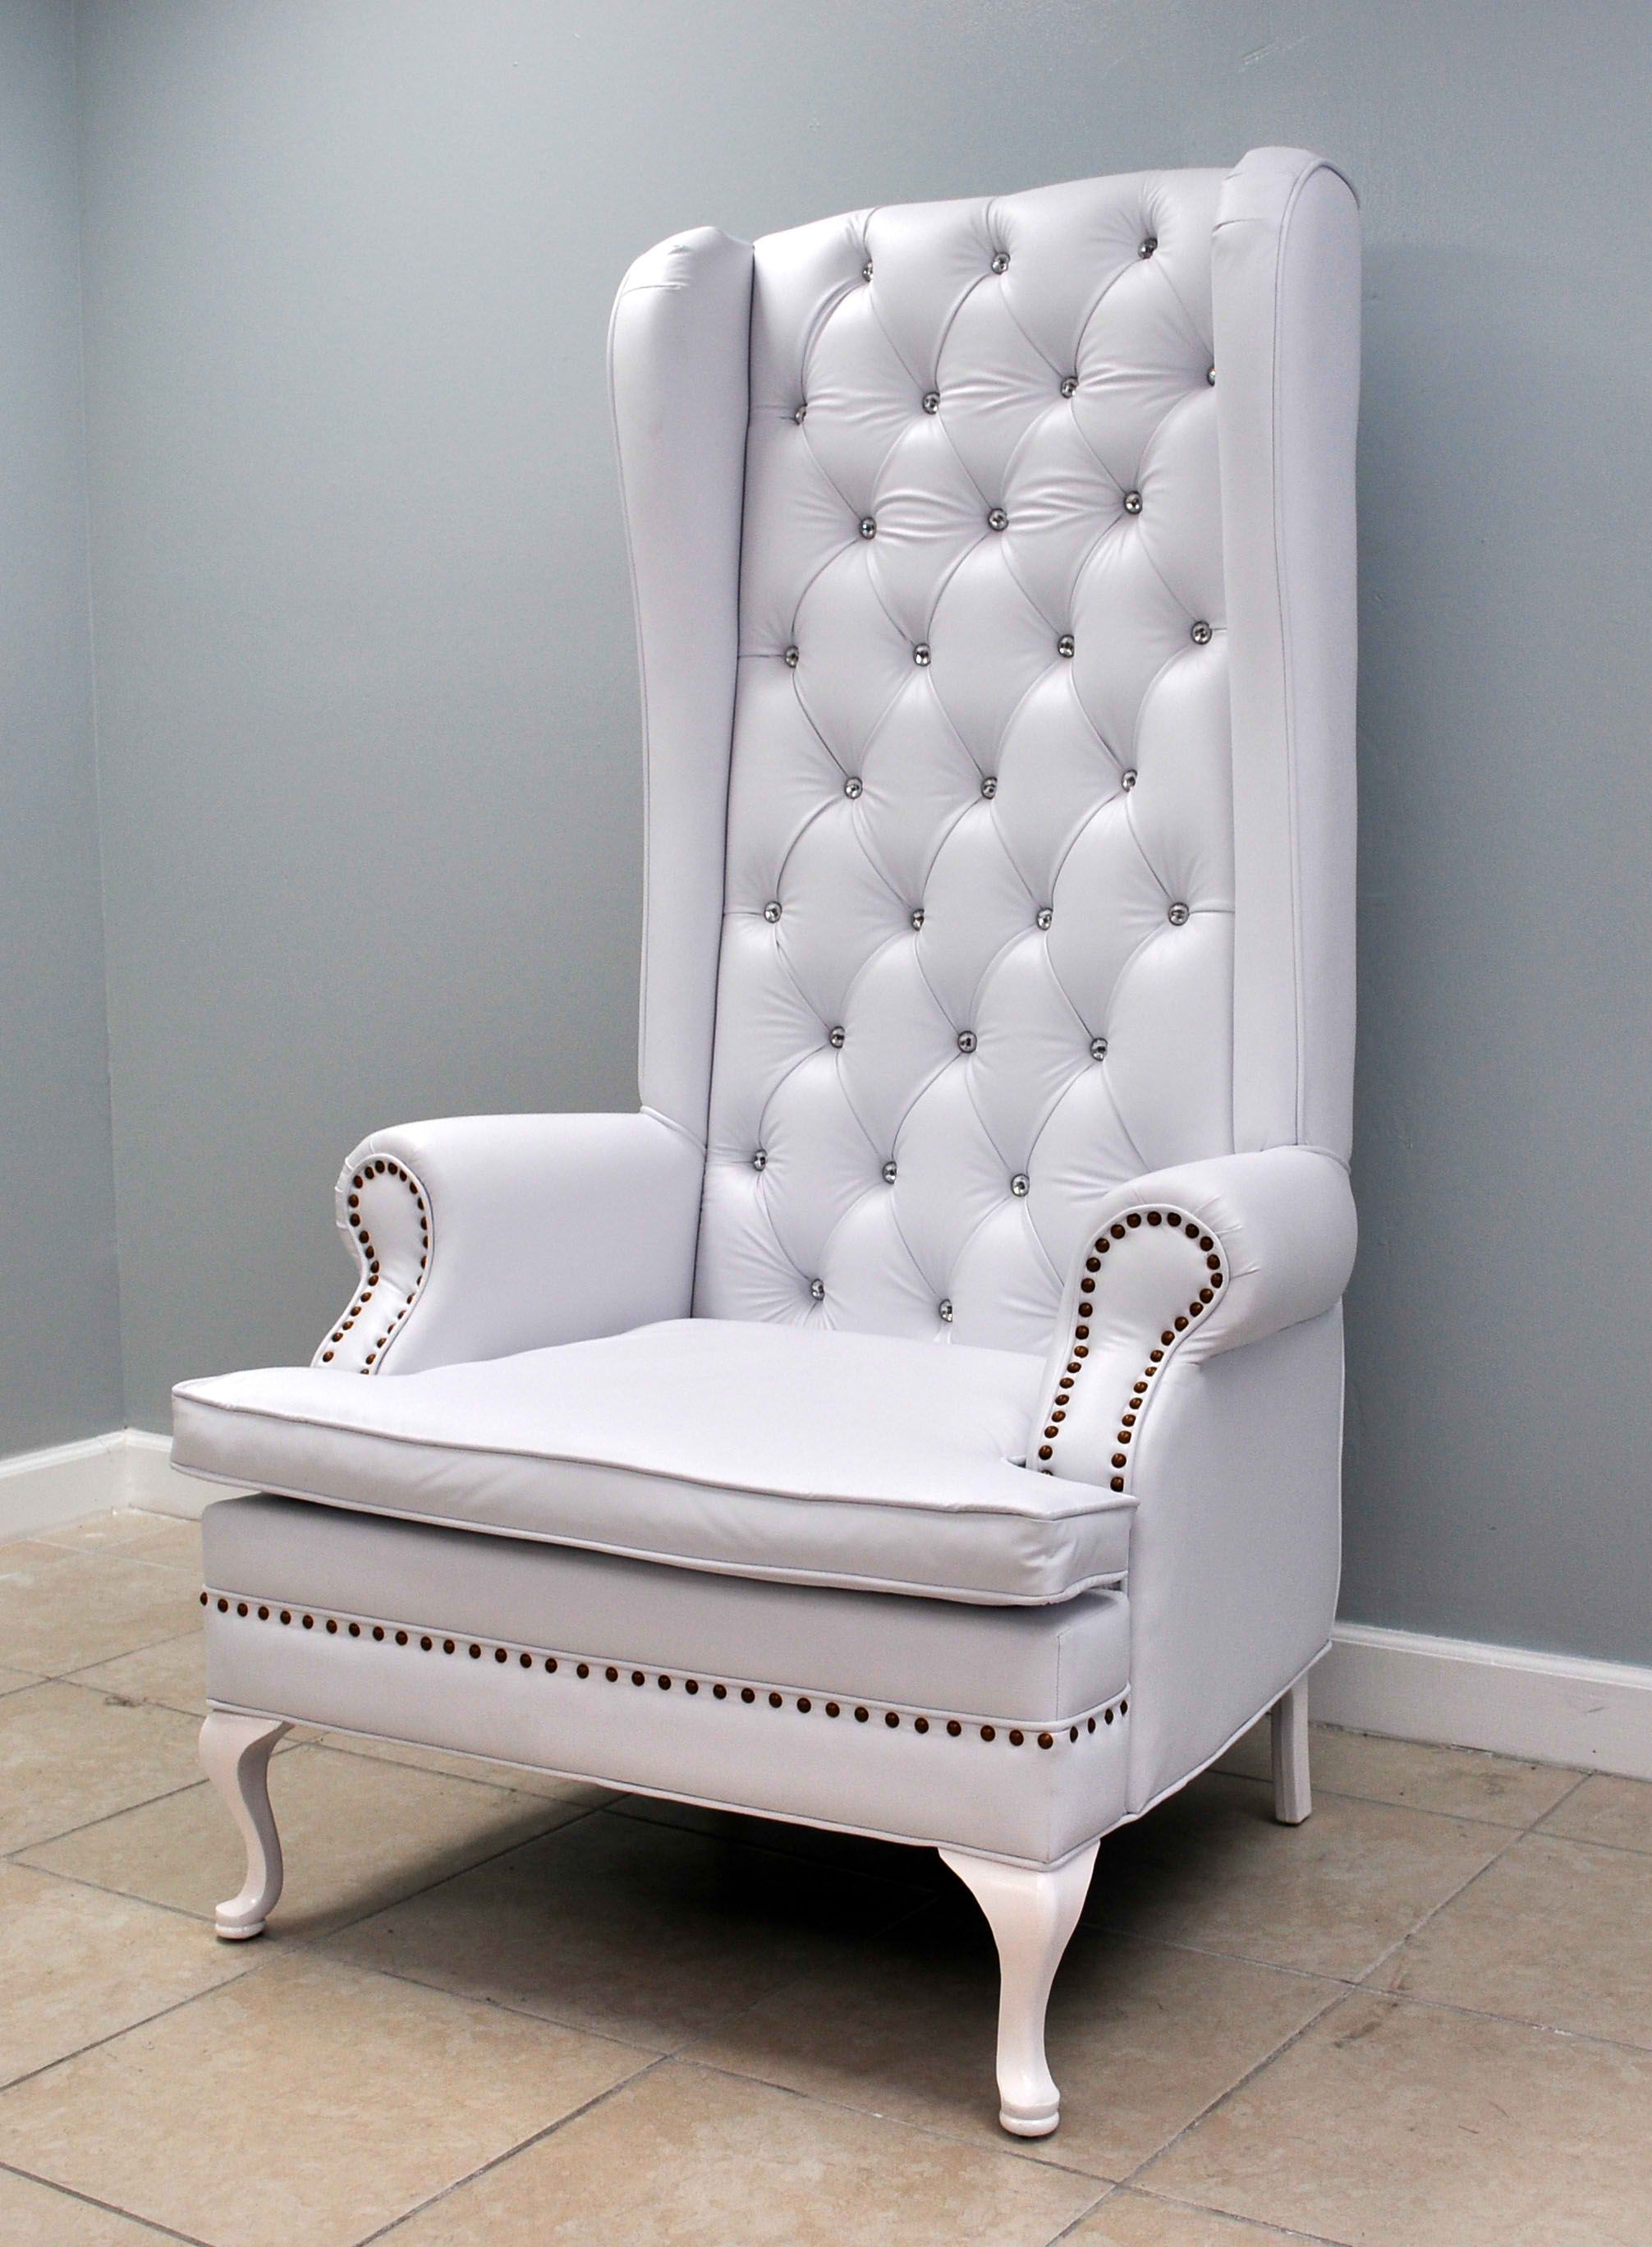 Delicieux White Throne Chair